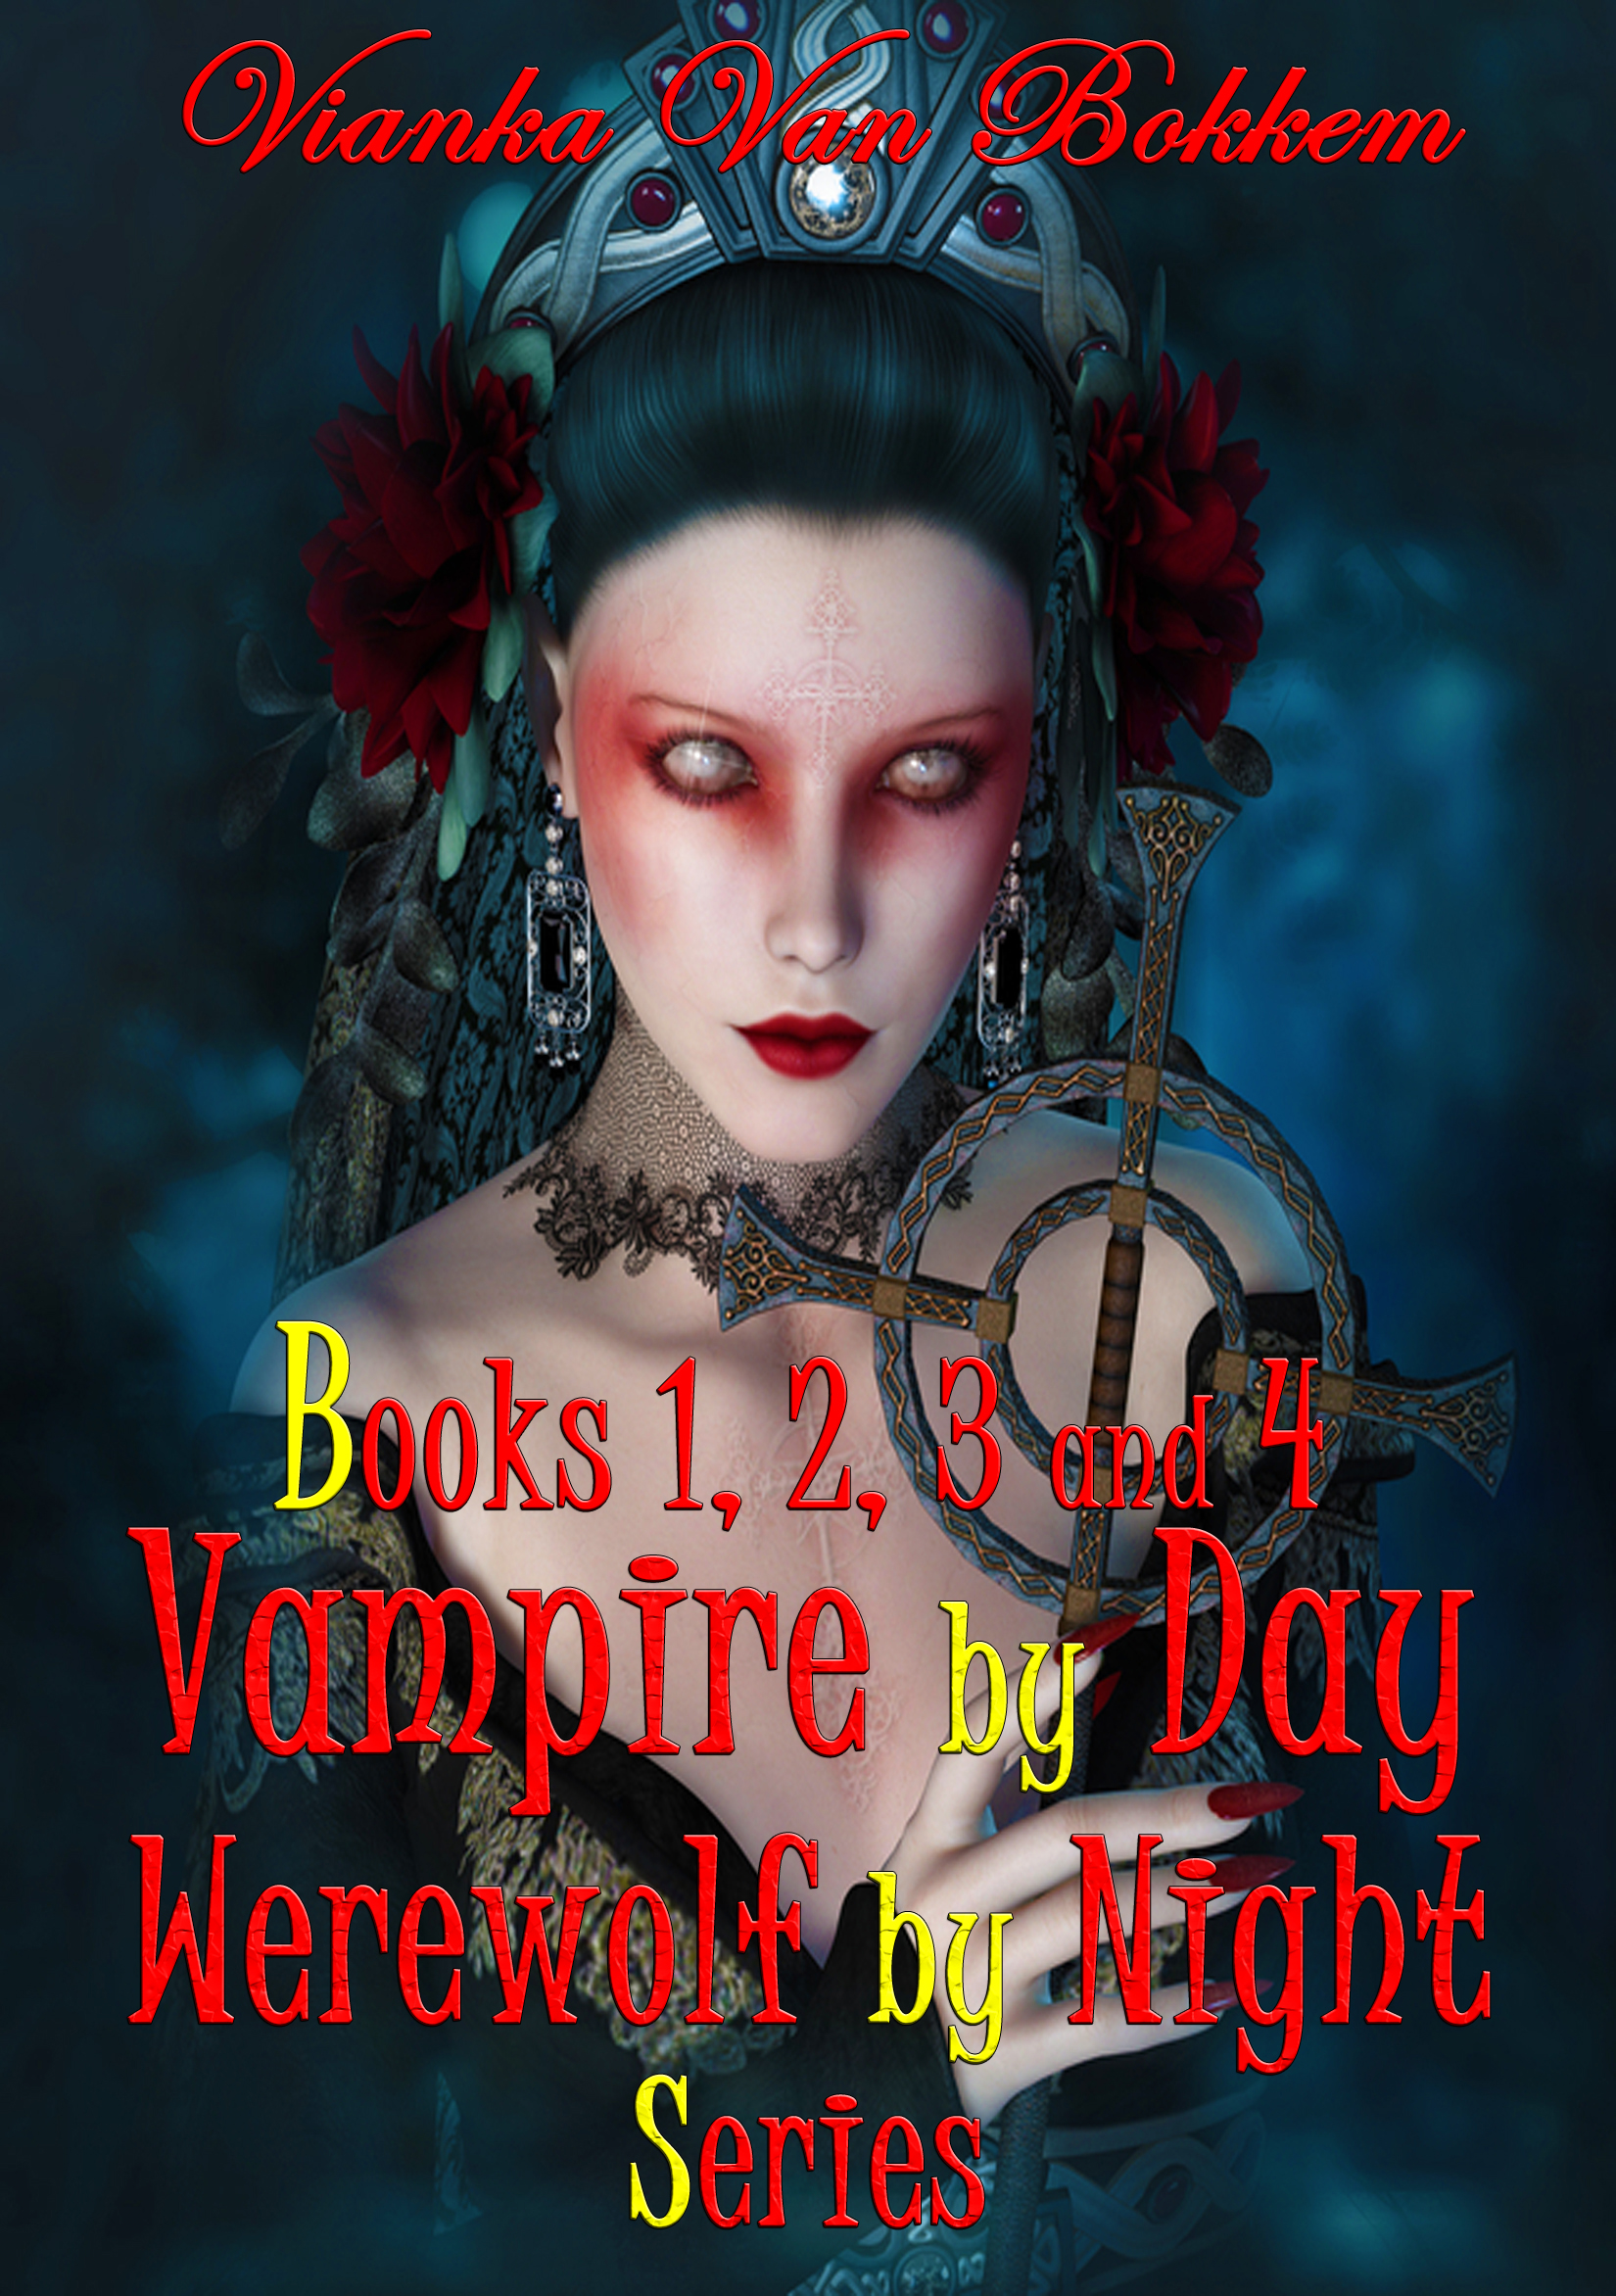 Adult vampire book series hardcore comics